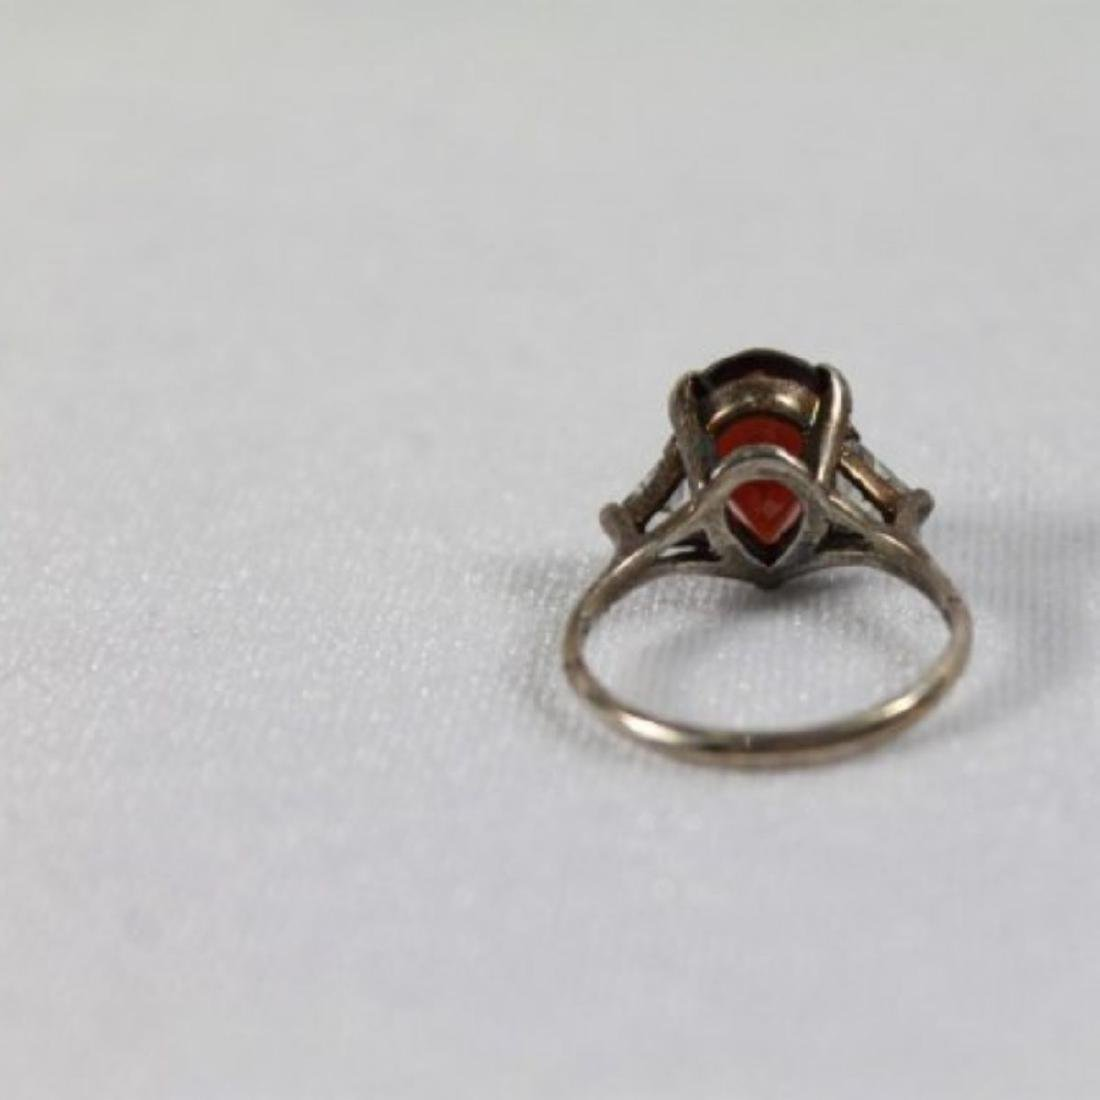 RED PEAR SHAPED RING WITH 2 WHITE TRILLIAN STONES ON - 7